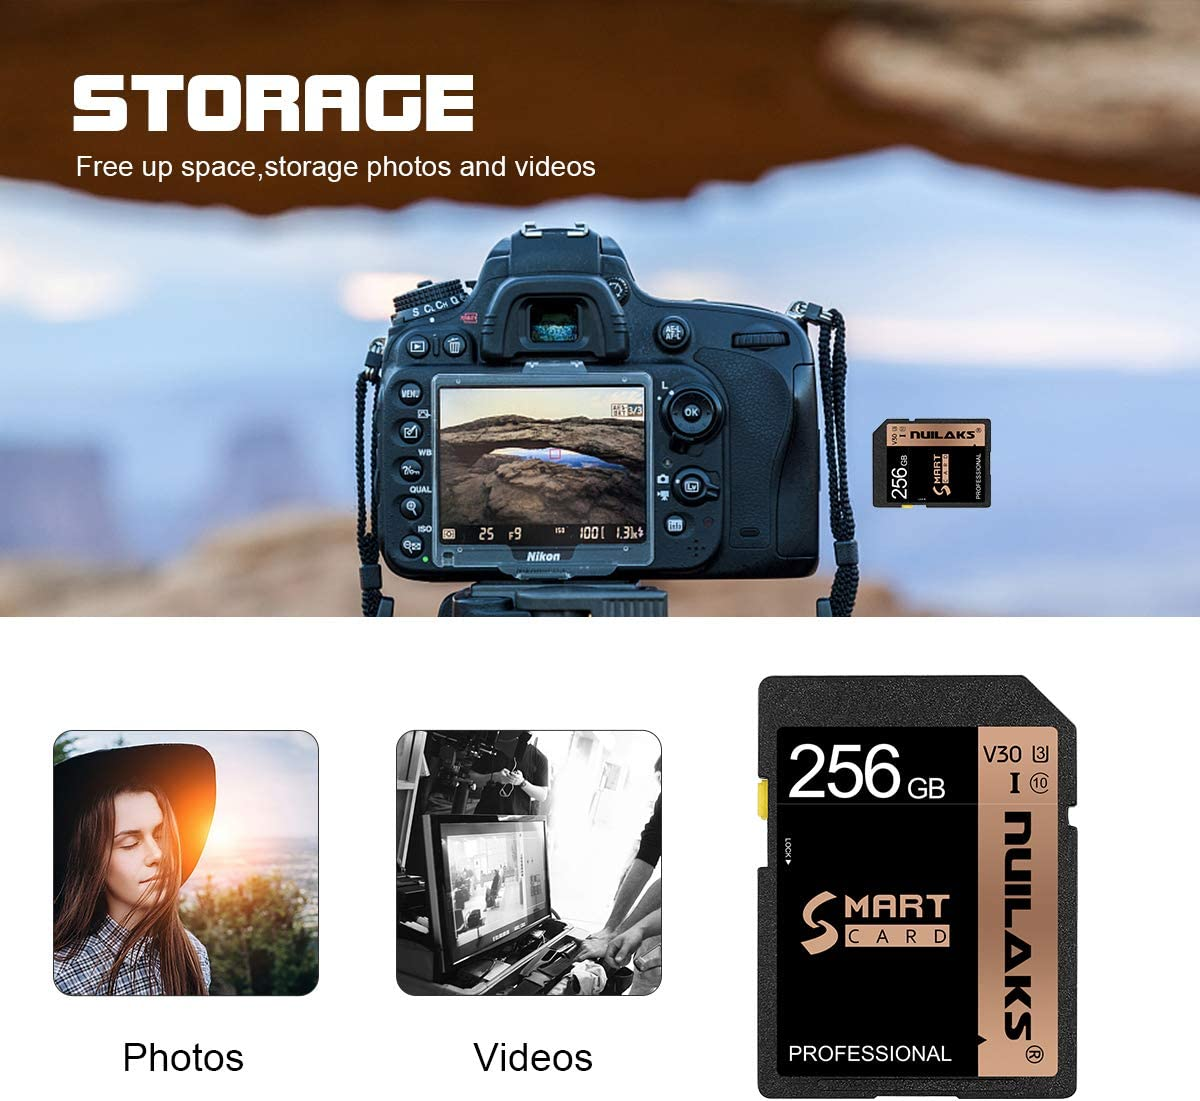 SD Card 256GB Memory Card Flash Memory Card Class 10 High Speed Security Digital Memory Card for Vloggers, Filmmakers, Photographers & Content Curators(256GB)…